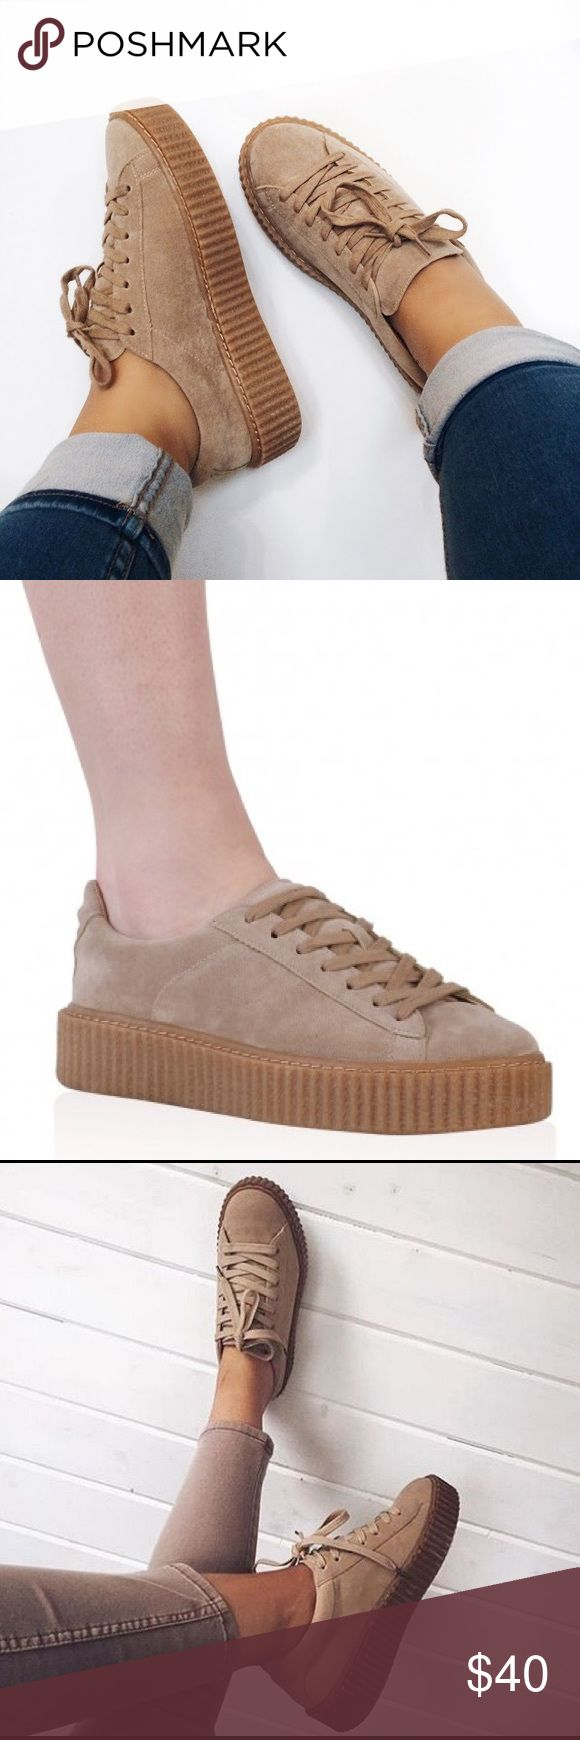 Tan Suede Creepers Perfect condition! UK 5 / US 7 Shoes